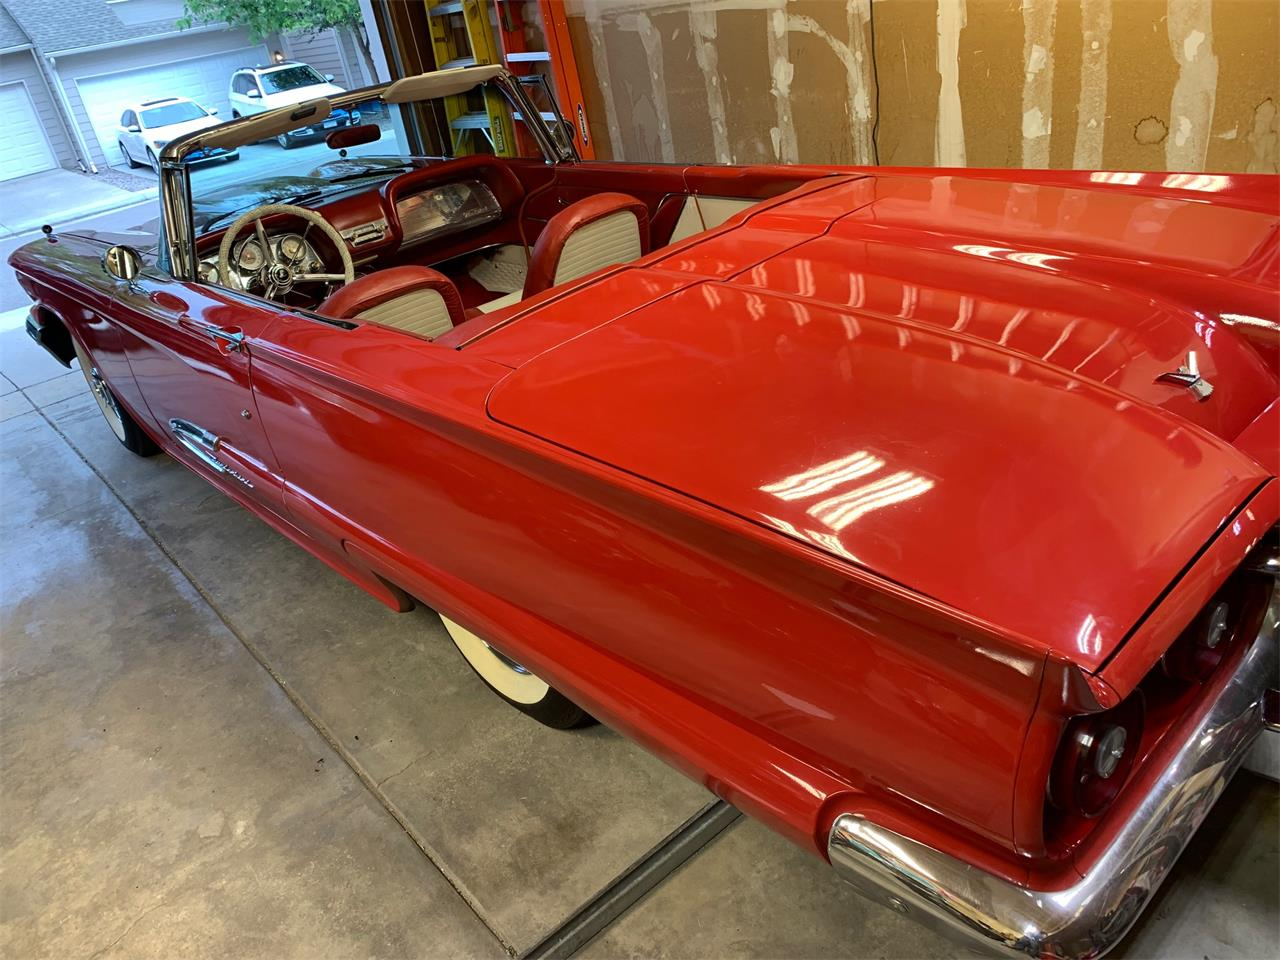 1959 Ford Thunderbird (CC-1237688) for sale in Aurora, Colorado